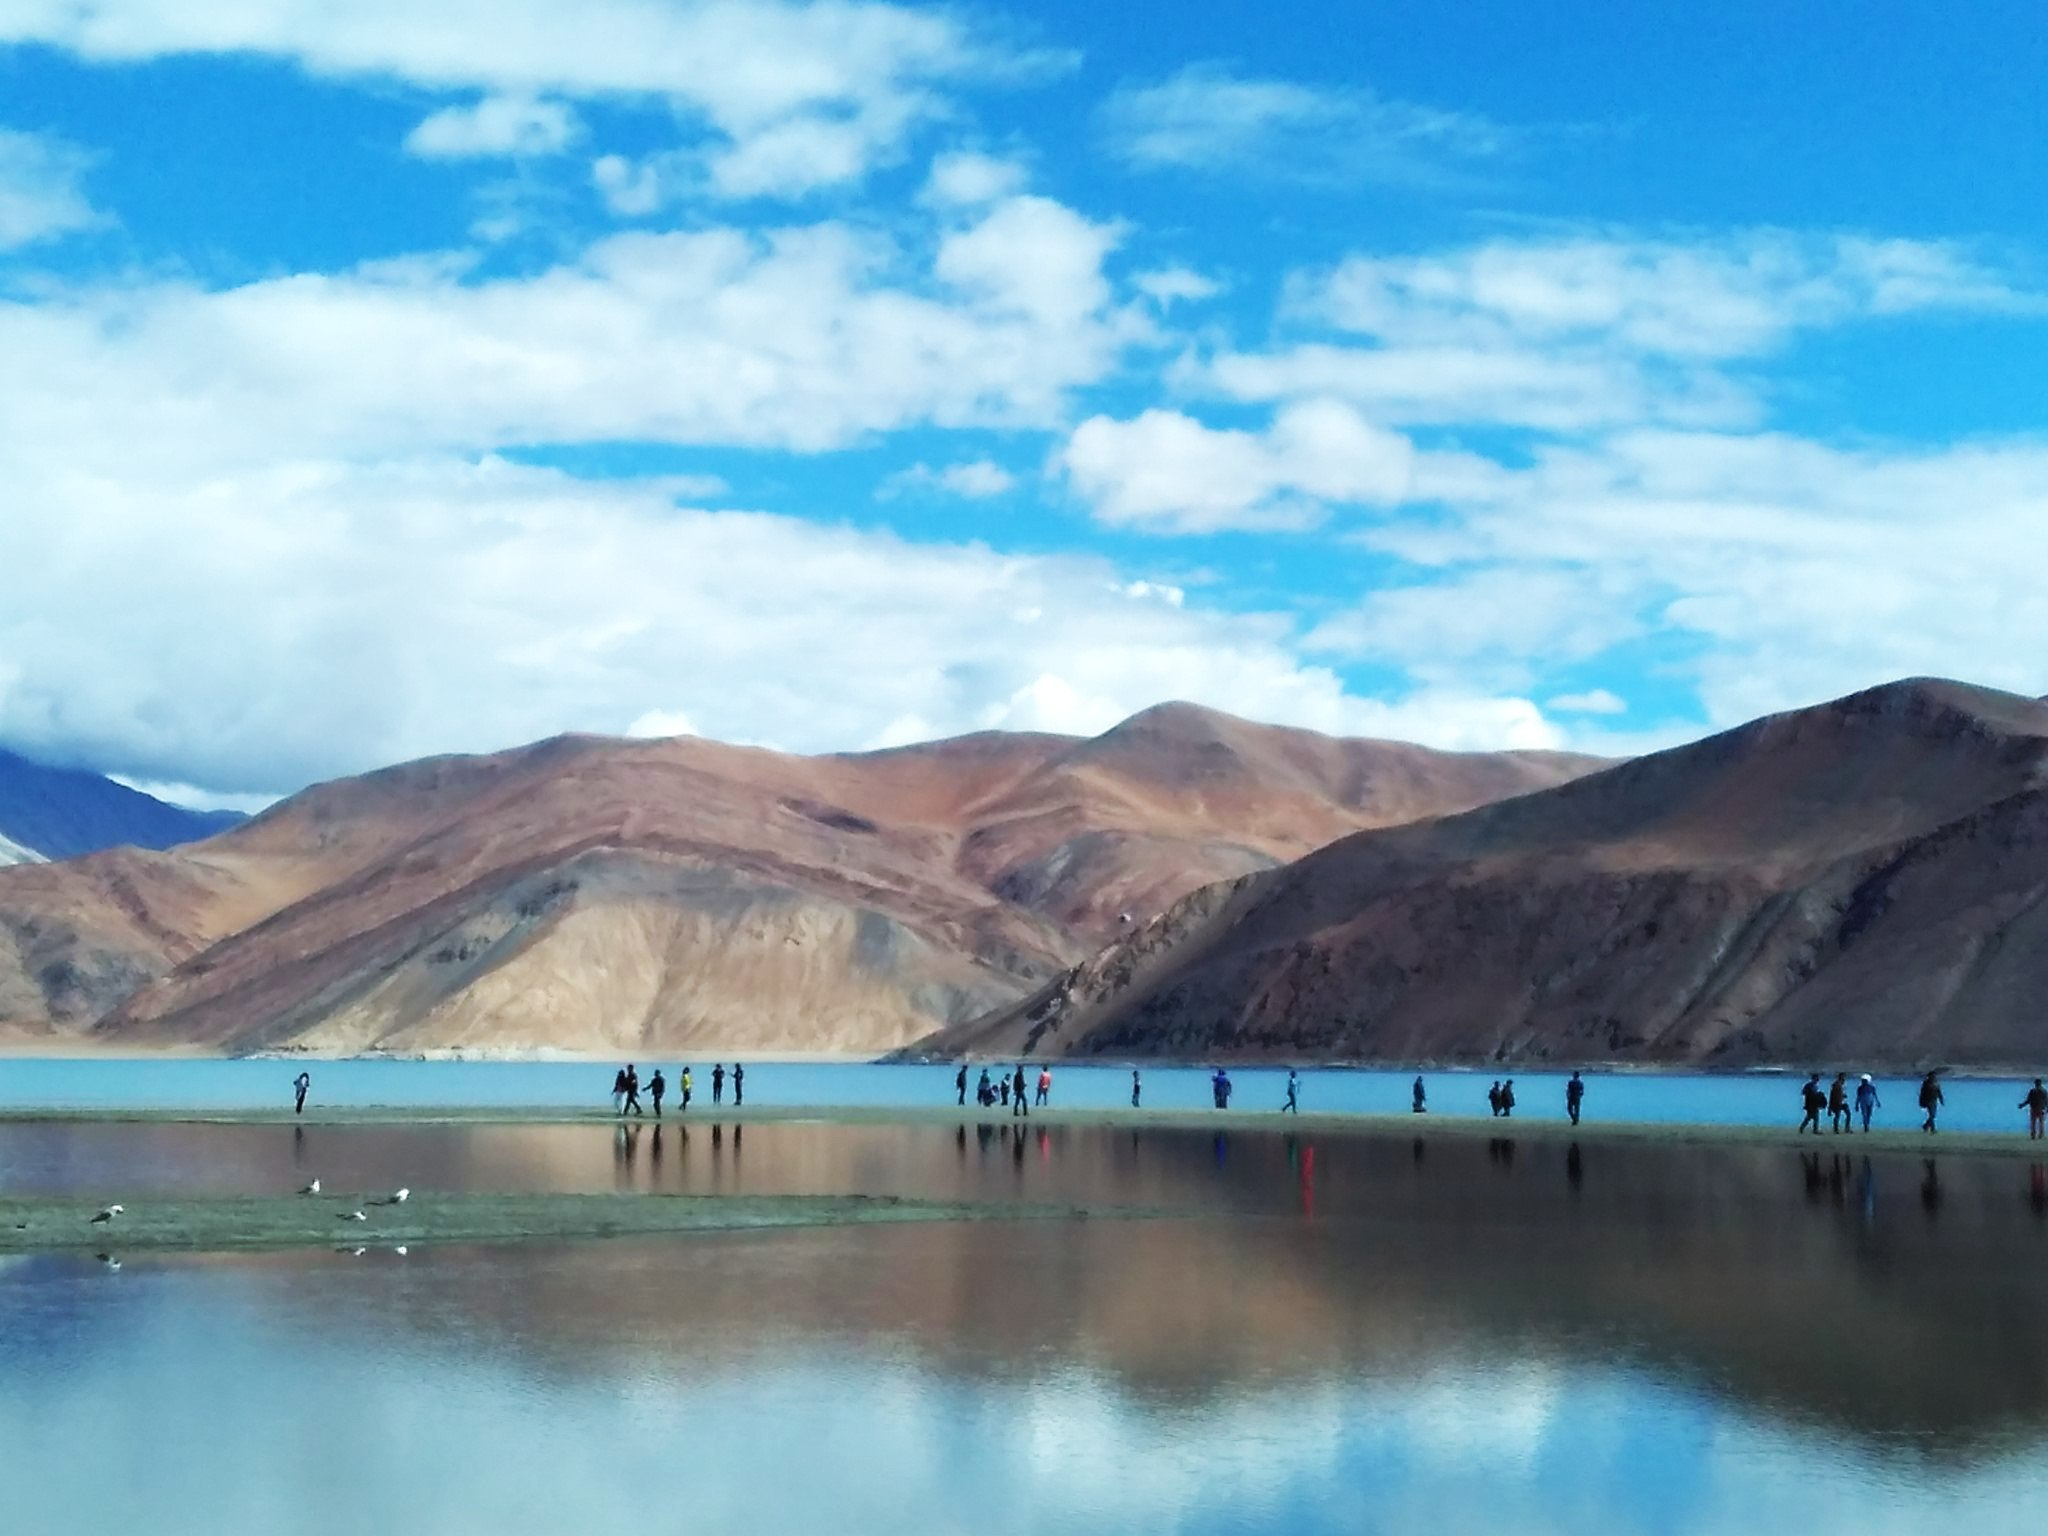 Different shades of the Pangong Tso